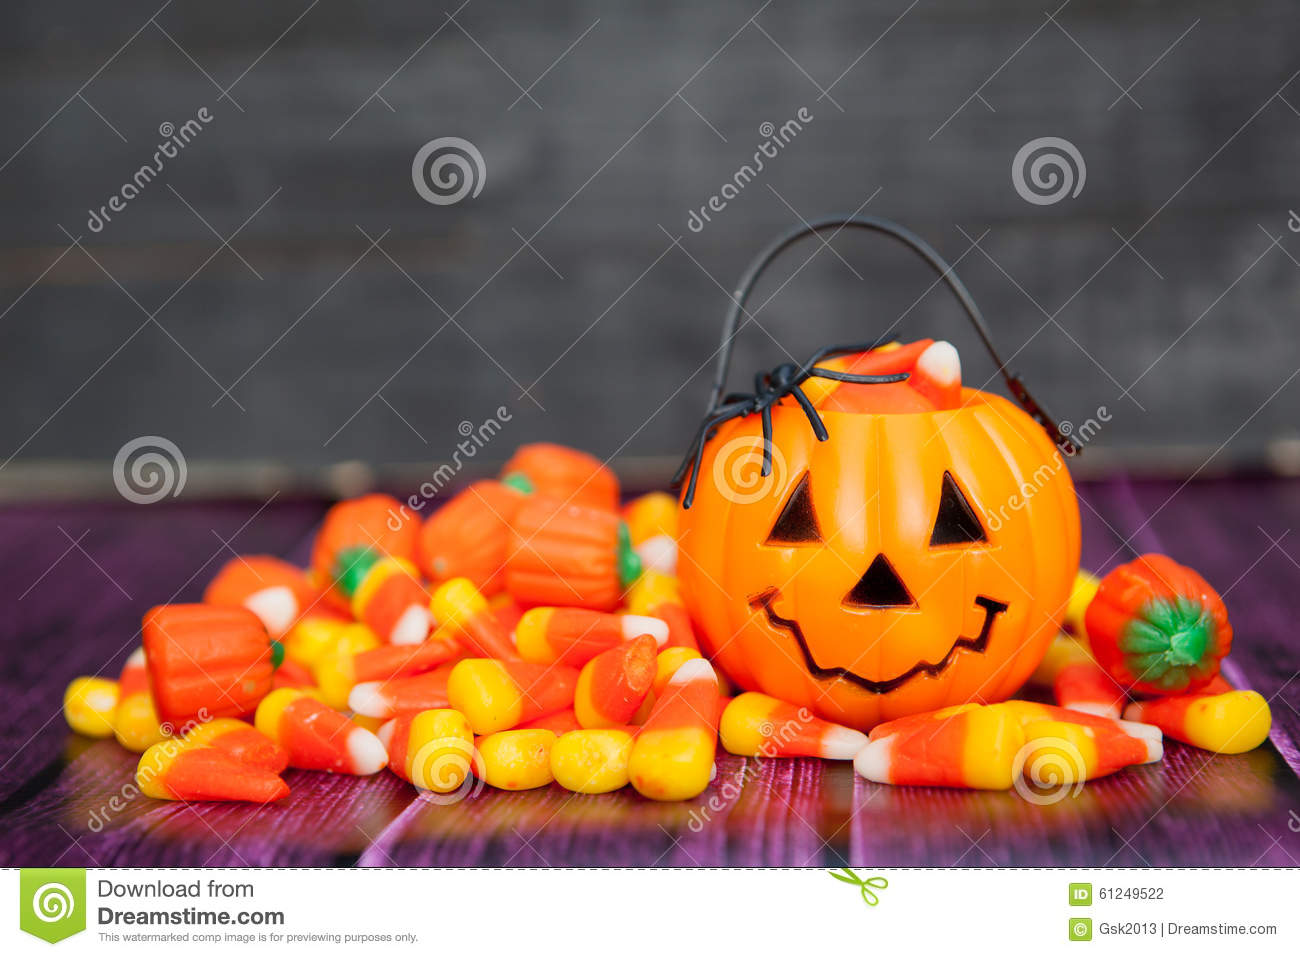 halloween candy background stock photo. image of holder - 61249522